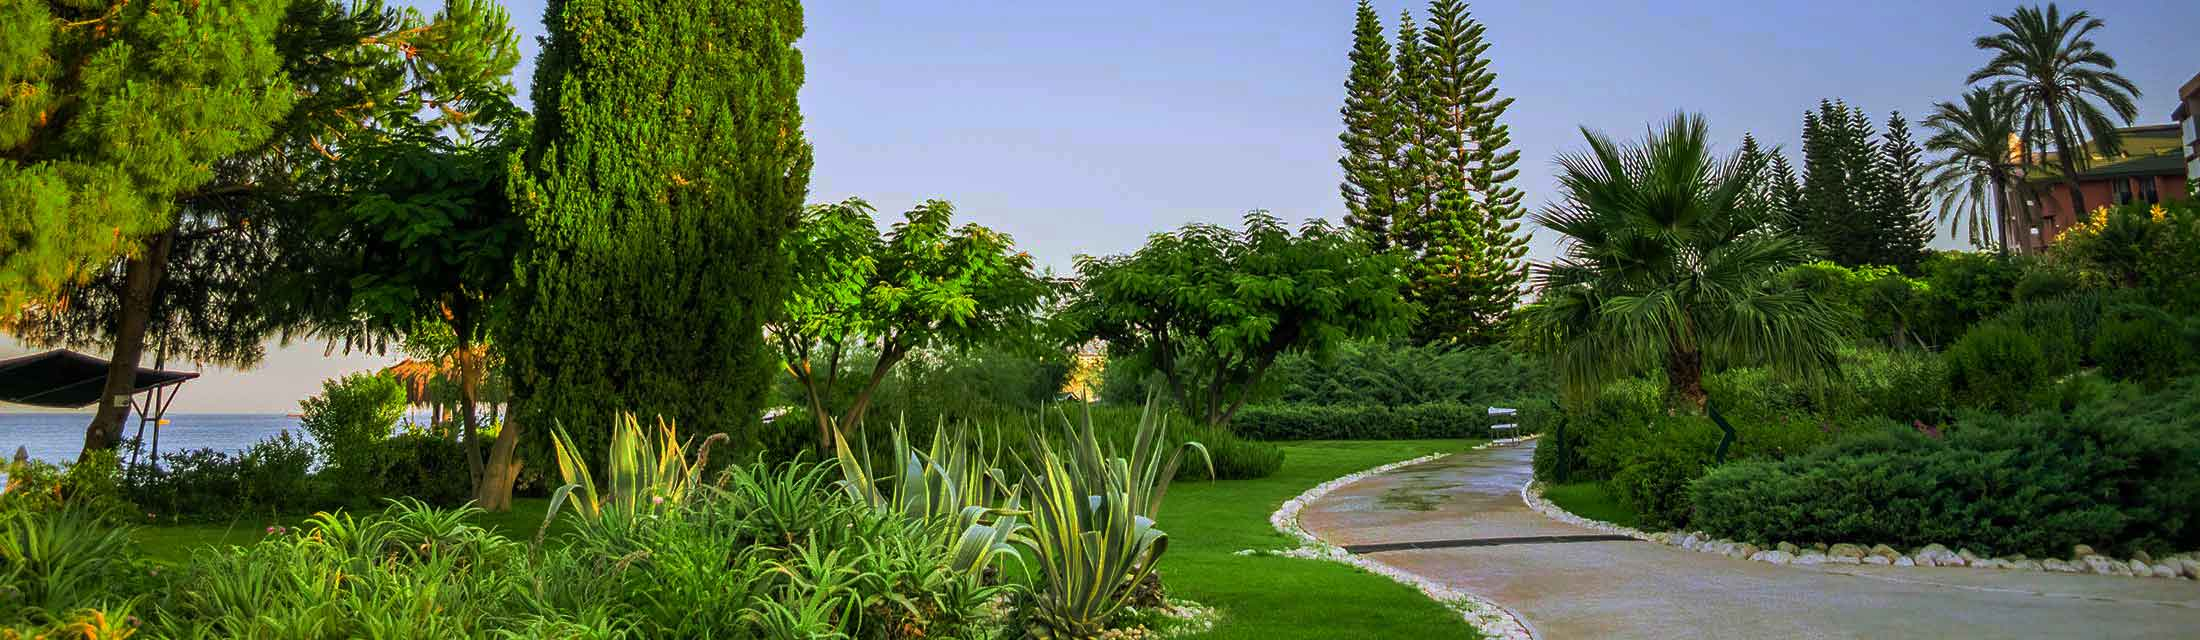 Lawn Care & landscaping Services Missouri